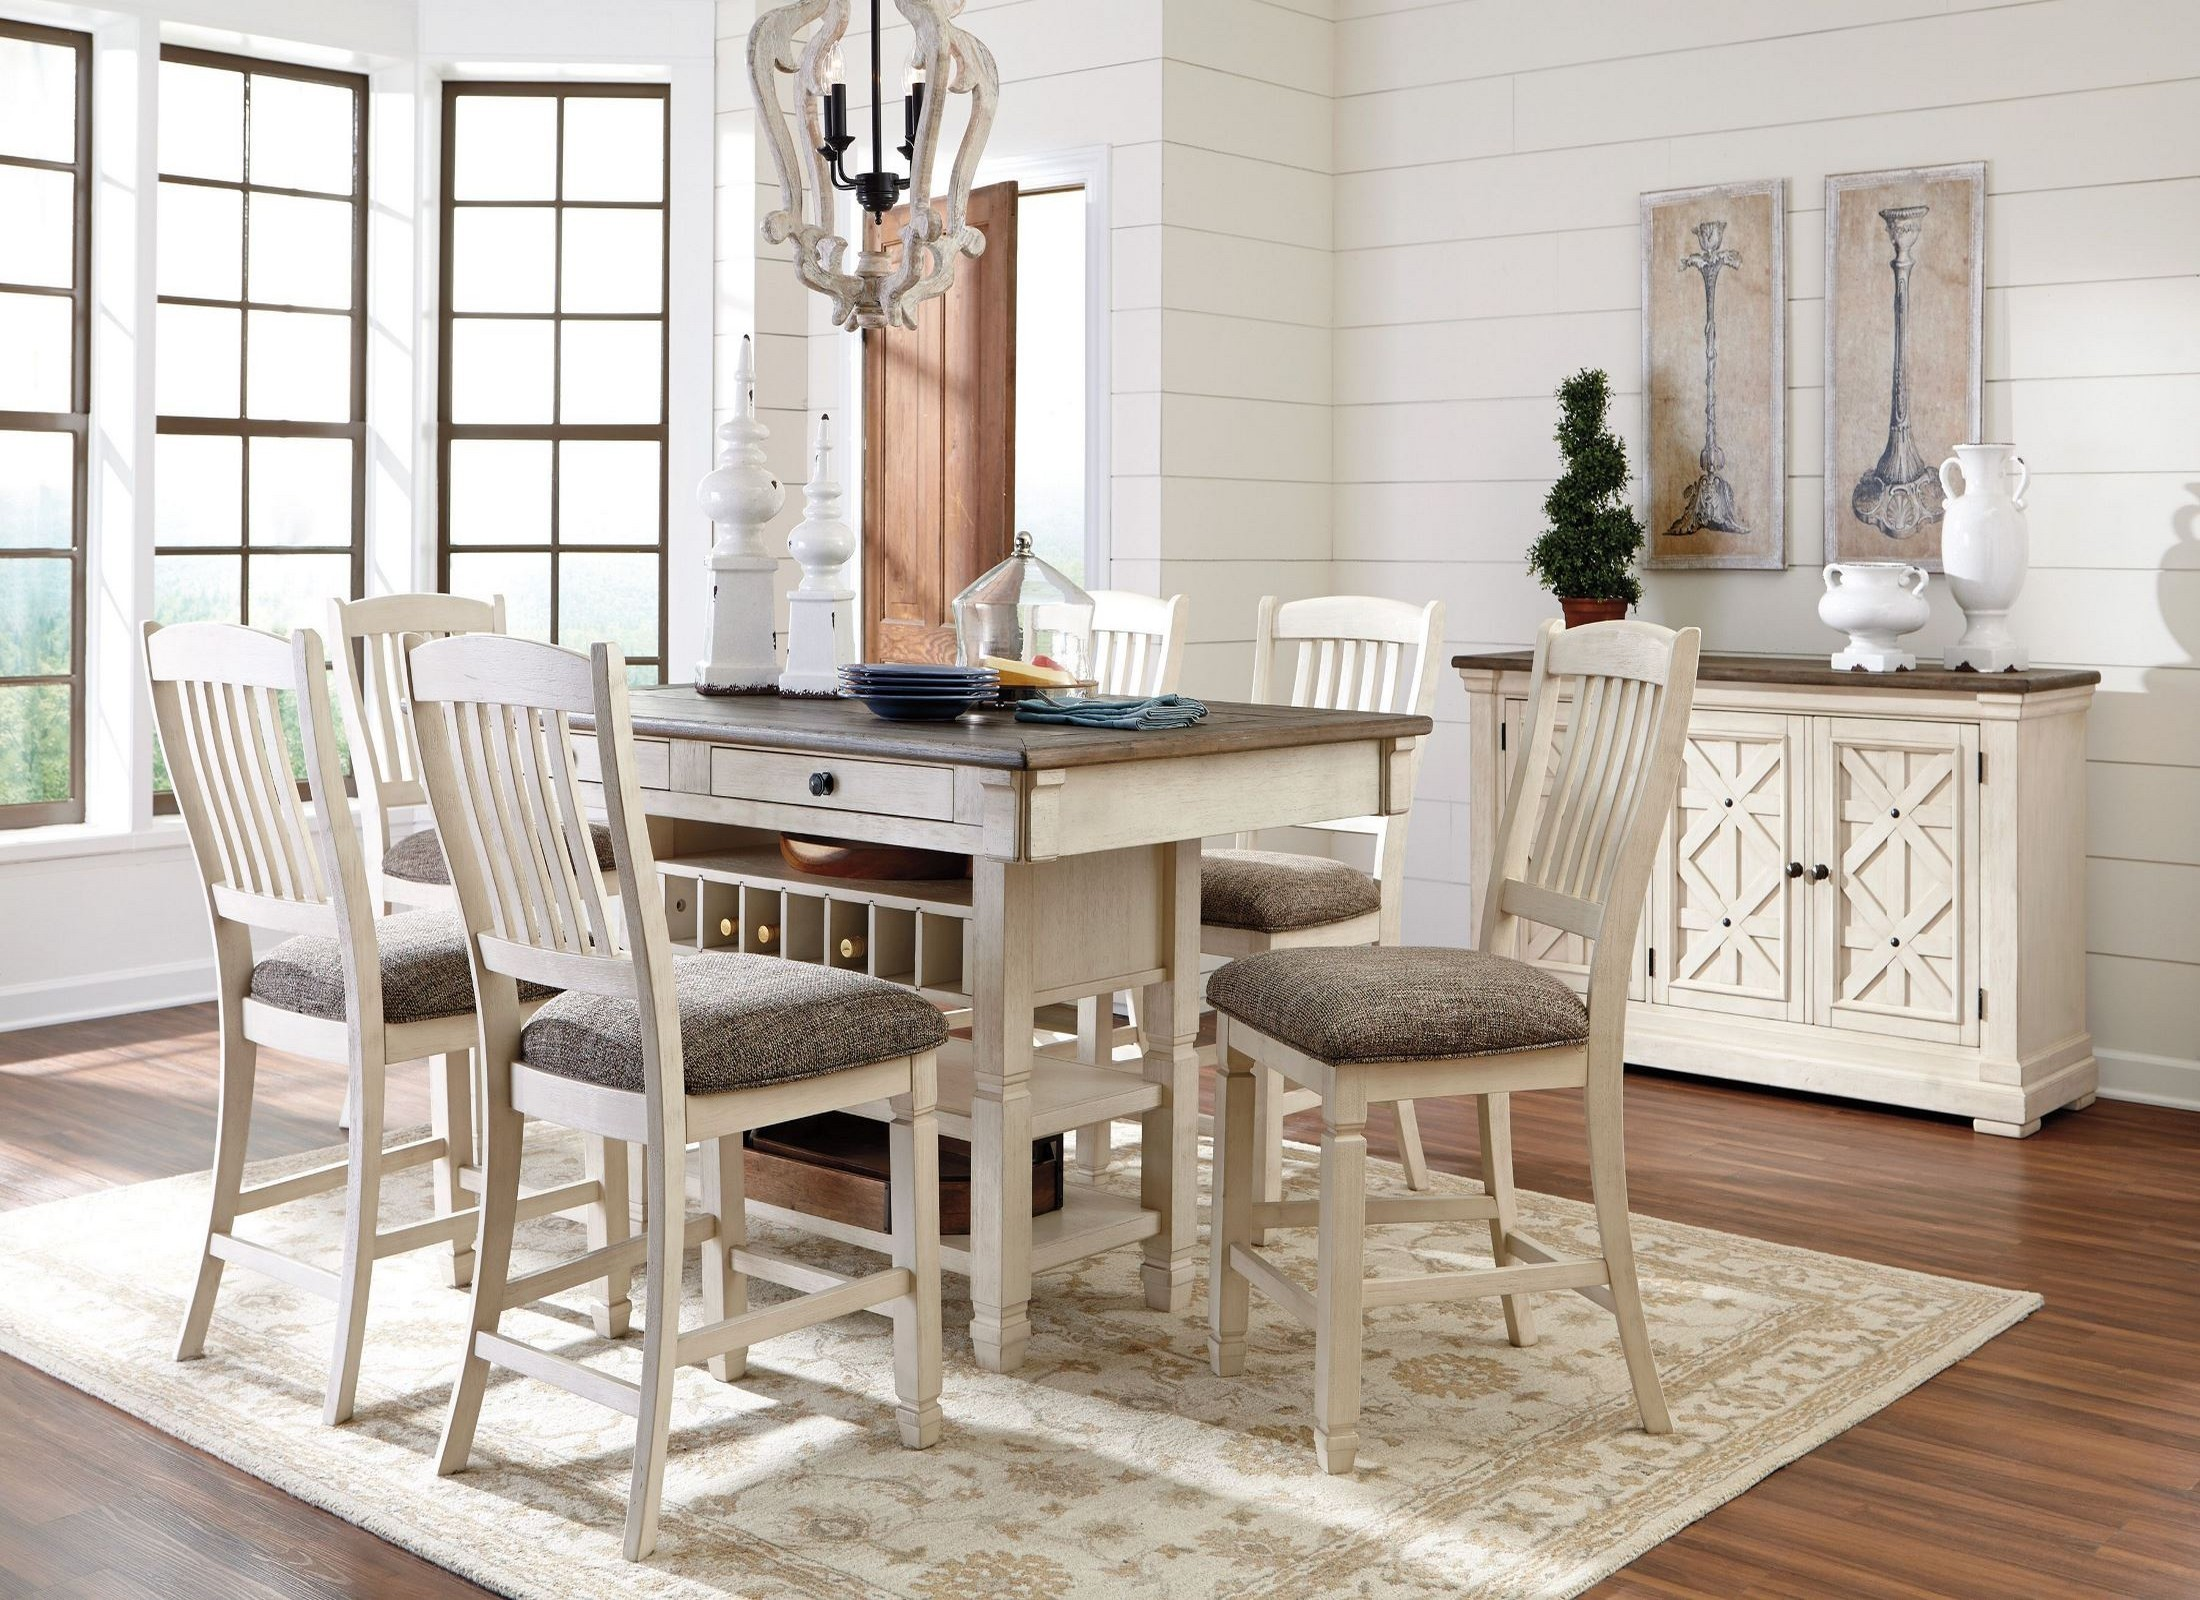 Bolanburg White And Gray Rectangular Counter Height Dining Room Set From  Ashley | Coleman Furniture